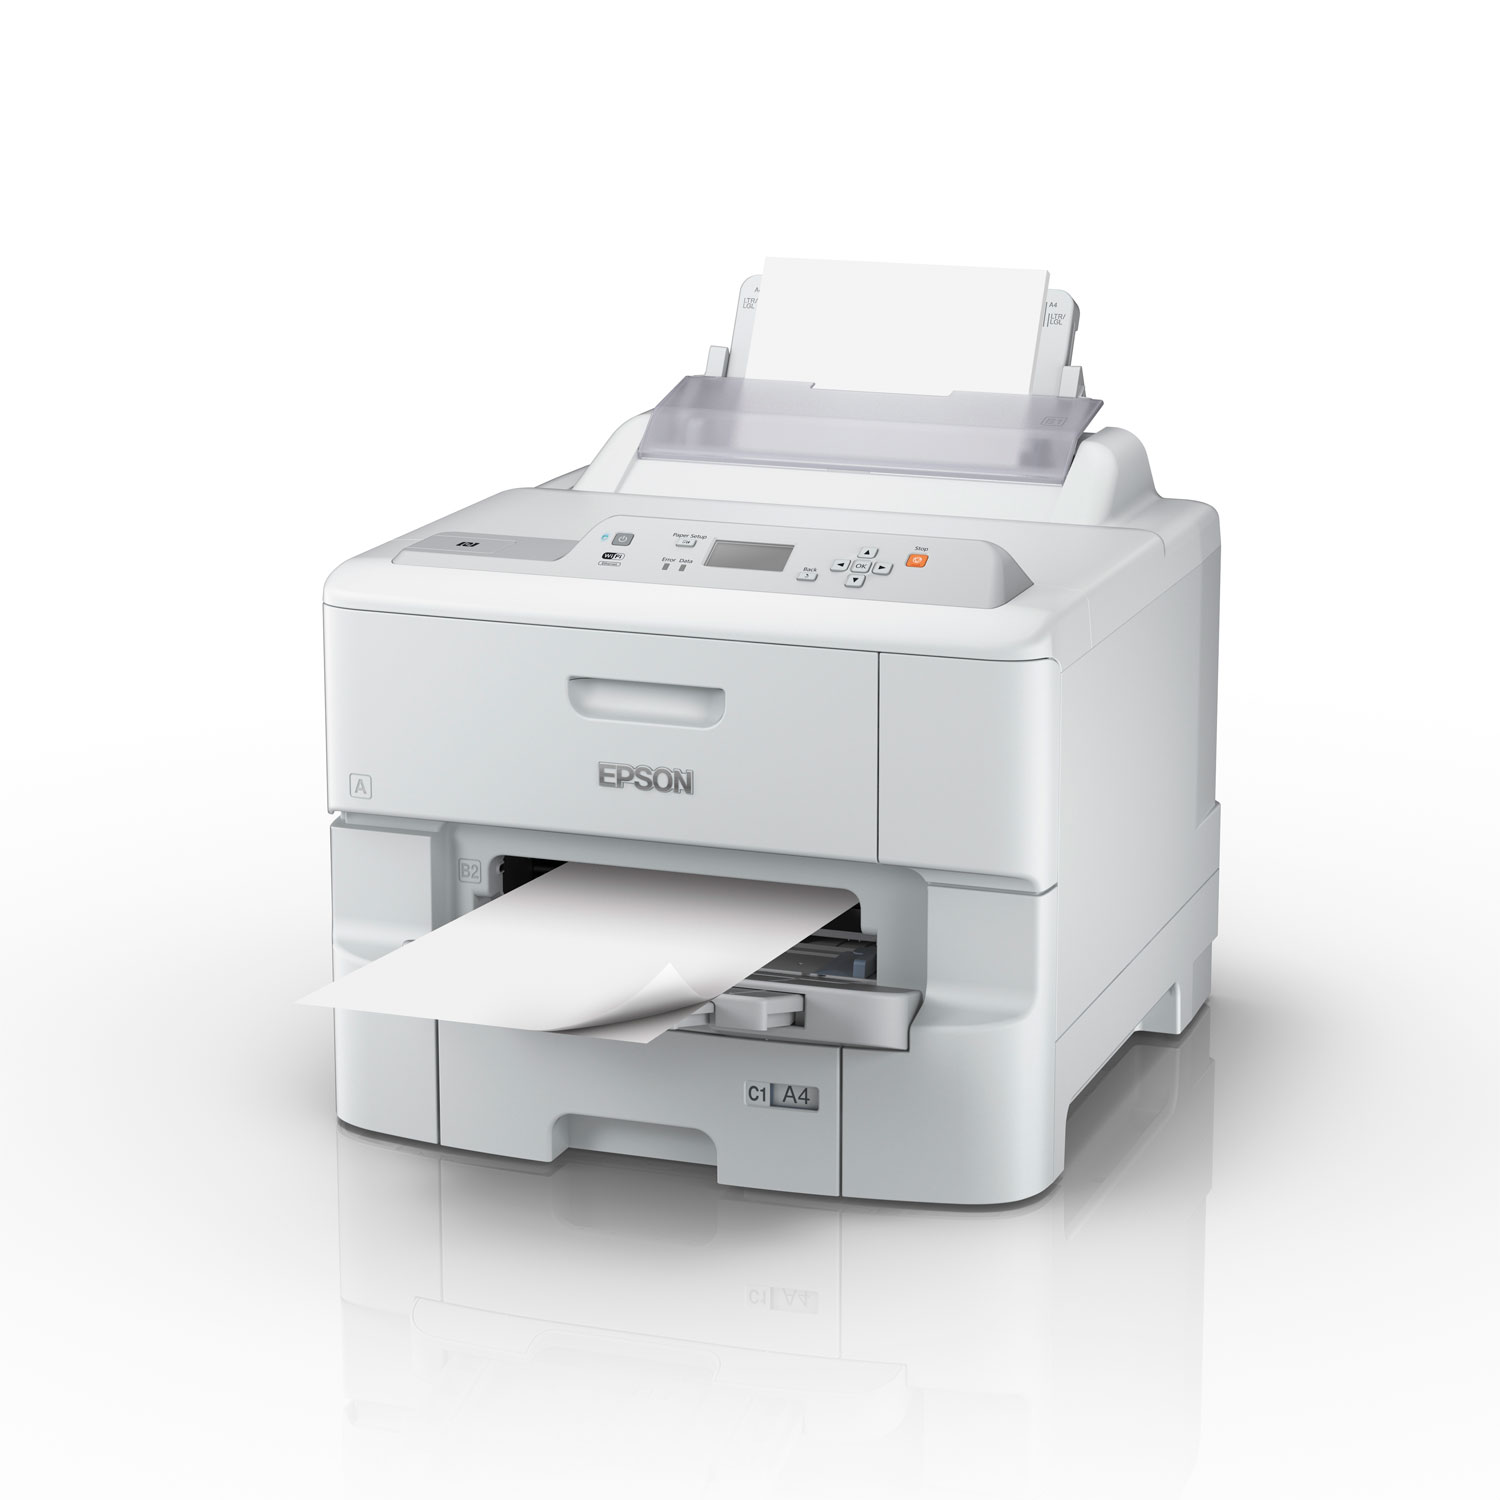 Epson WorkForce Pro WF-6090DW (C11CD47301) - Achat / Vente Imprimante sur Cybertek.fr - 1